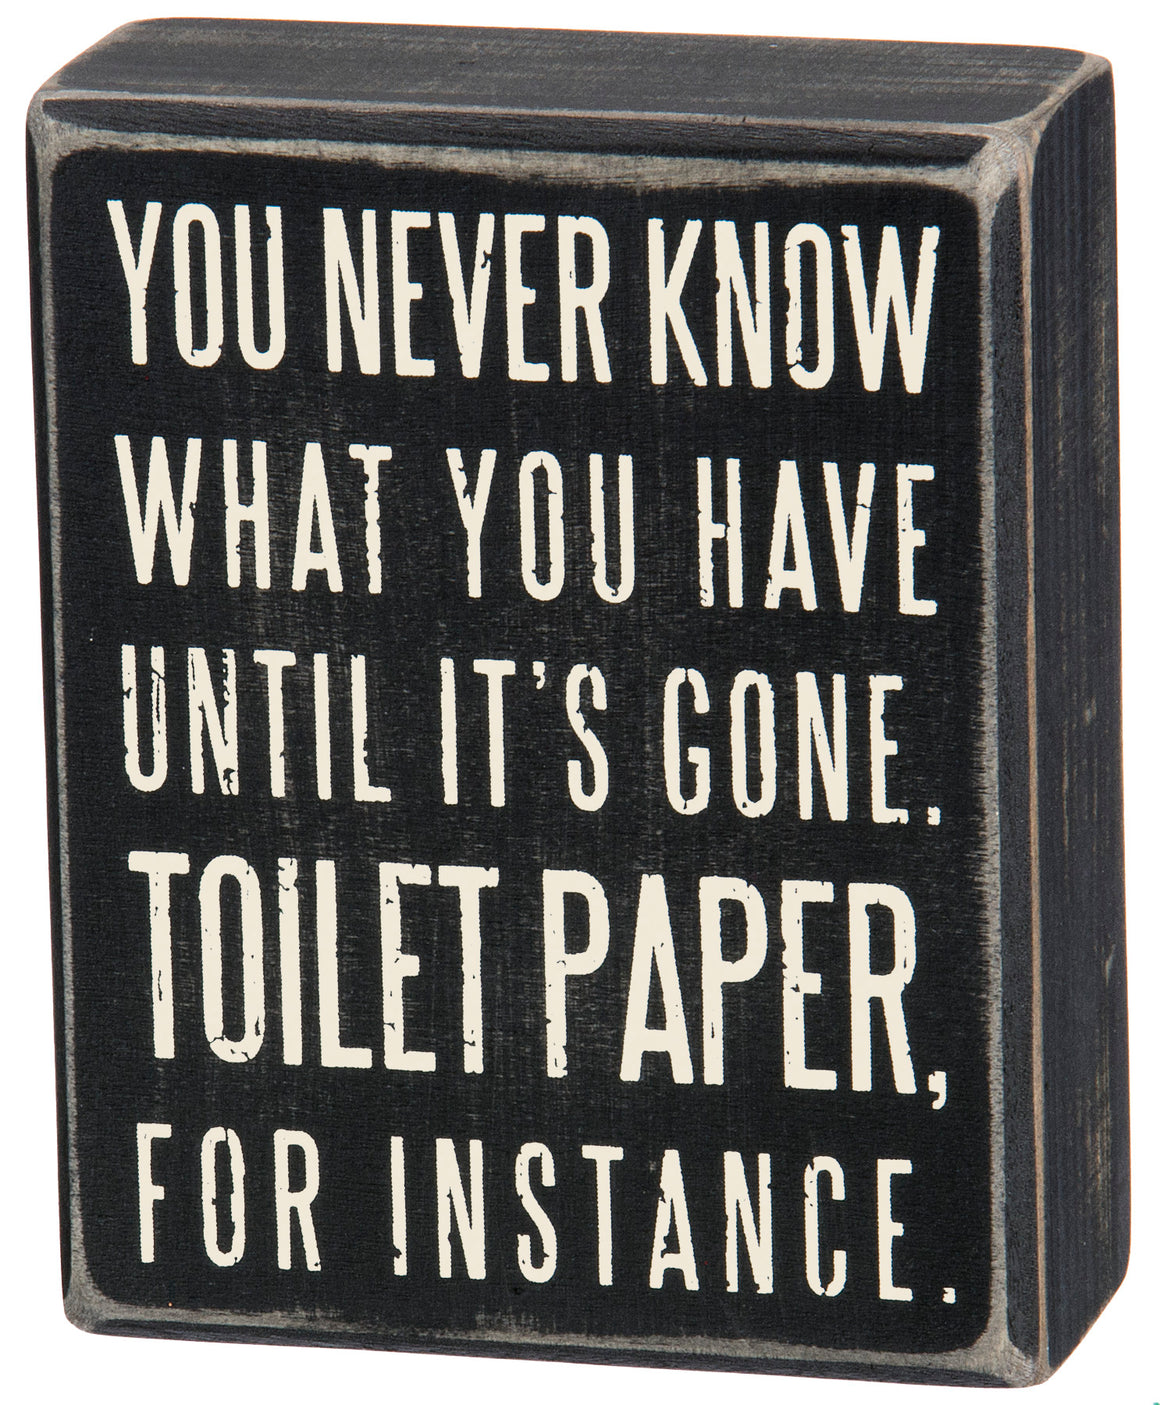 You Never Know What You Have Until It's Gone. Toilet Paper, For Instance Box Sign